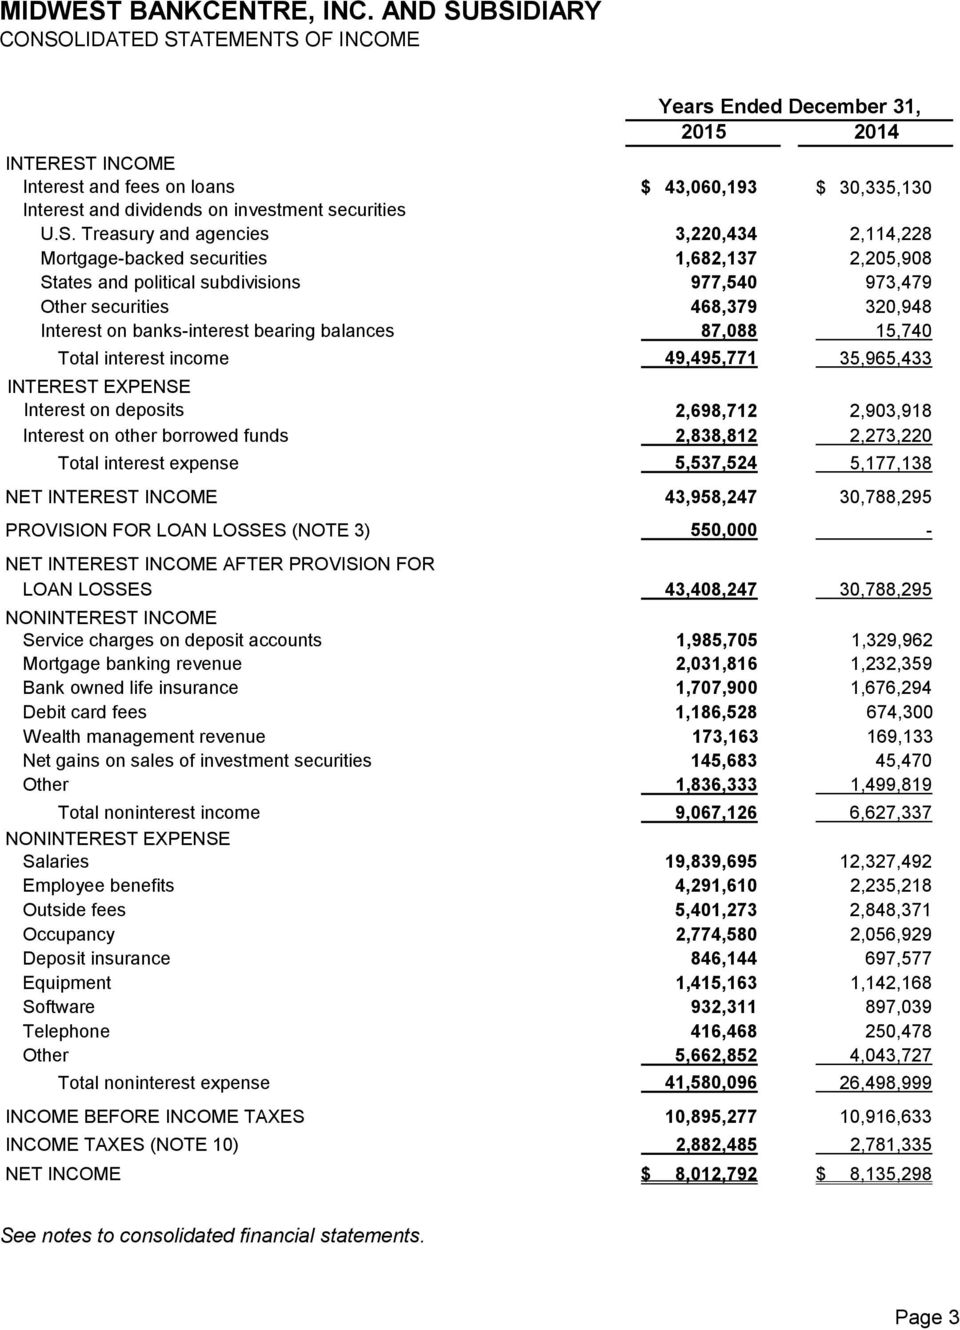 balances 87,088 15,740 Total interest income 49,495,771 35,965,433 INTEREST EXPENSE Interest on deposits 2,698,712 2,903,918 Interest on other borrowed funds 2,838,812 2,273,220 Total interest